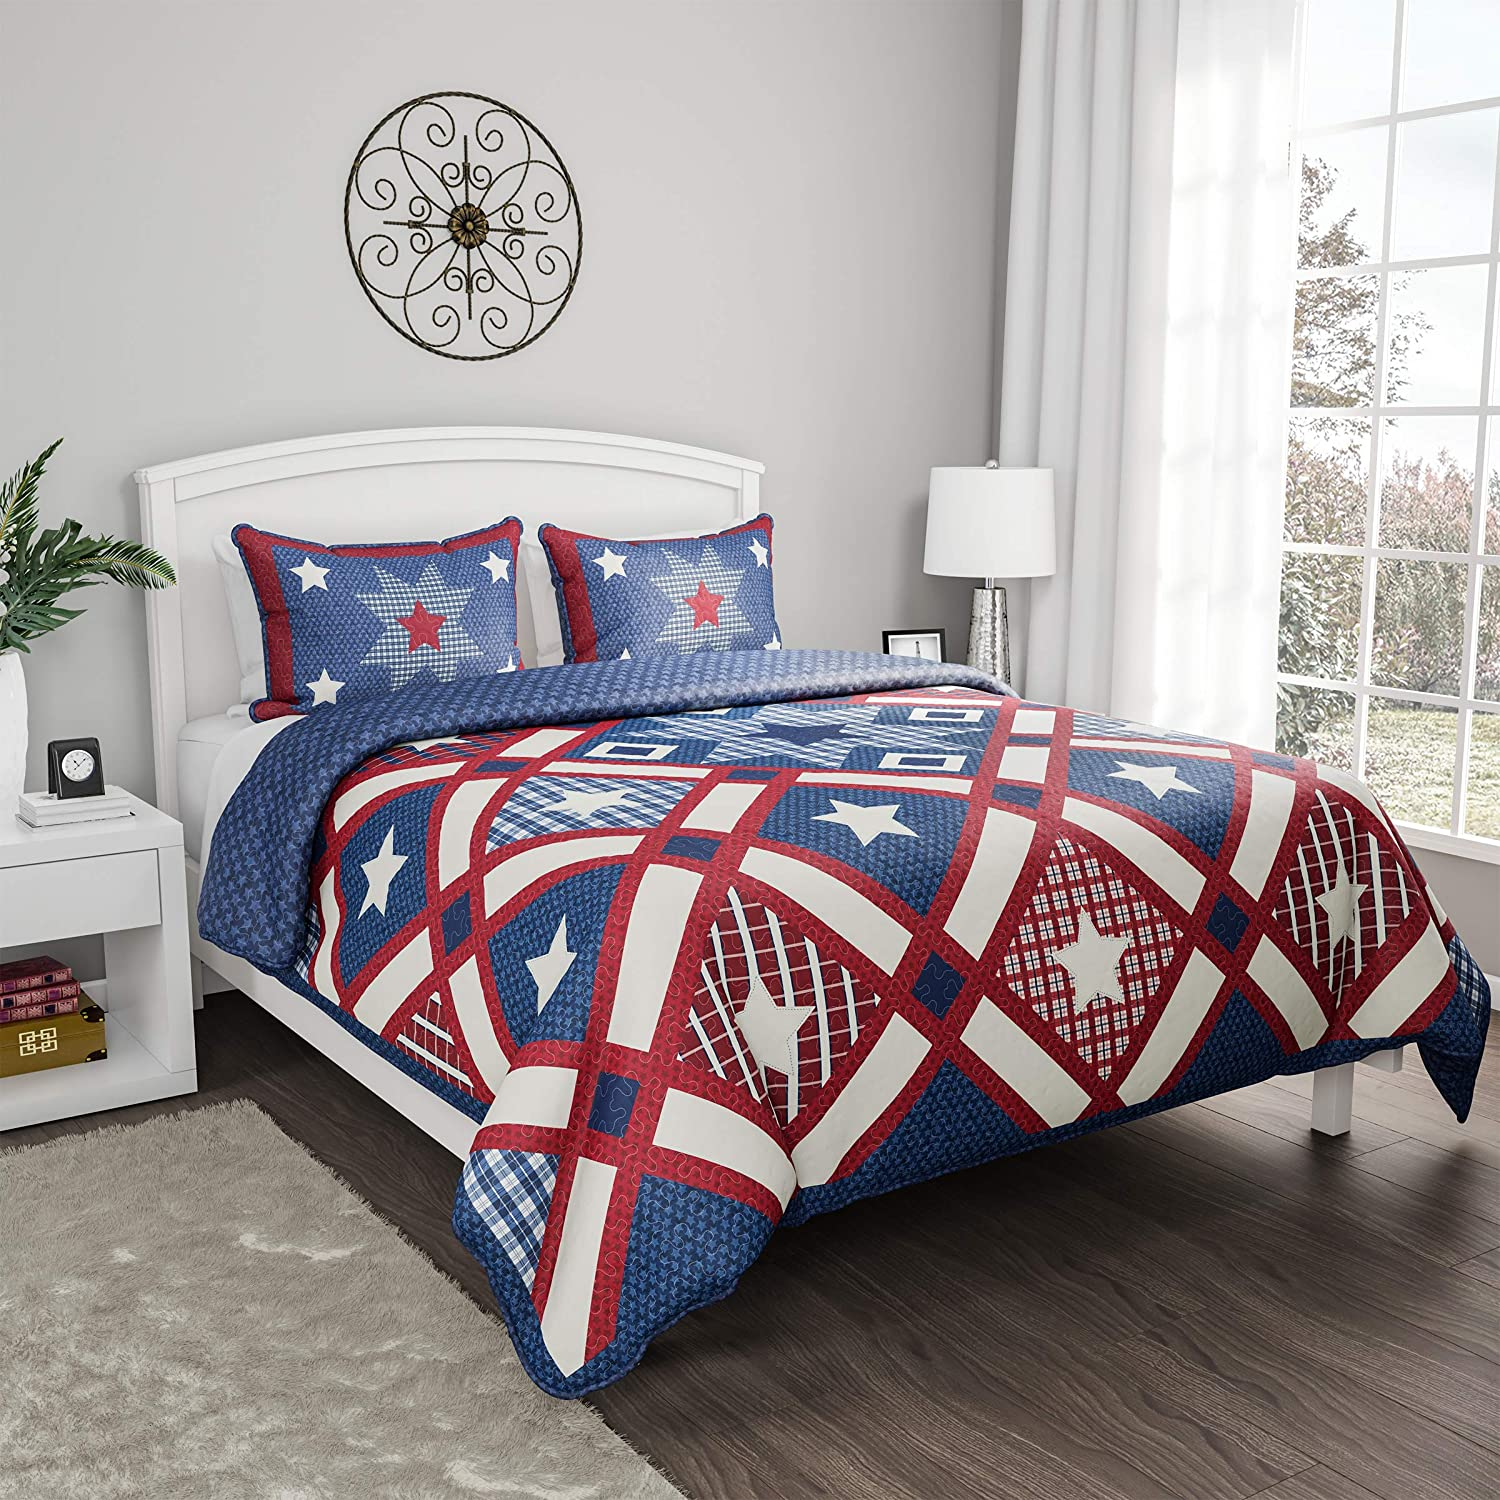 F//Q Hypoallergenic Polyester Microfiber Homestead Patriotic Americana Print All-Season Blanket with Sham , Bedford Home 3-Piece Quilt and Bedding Set